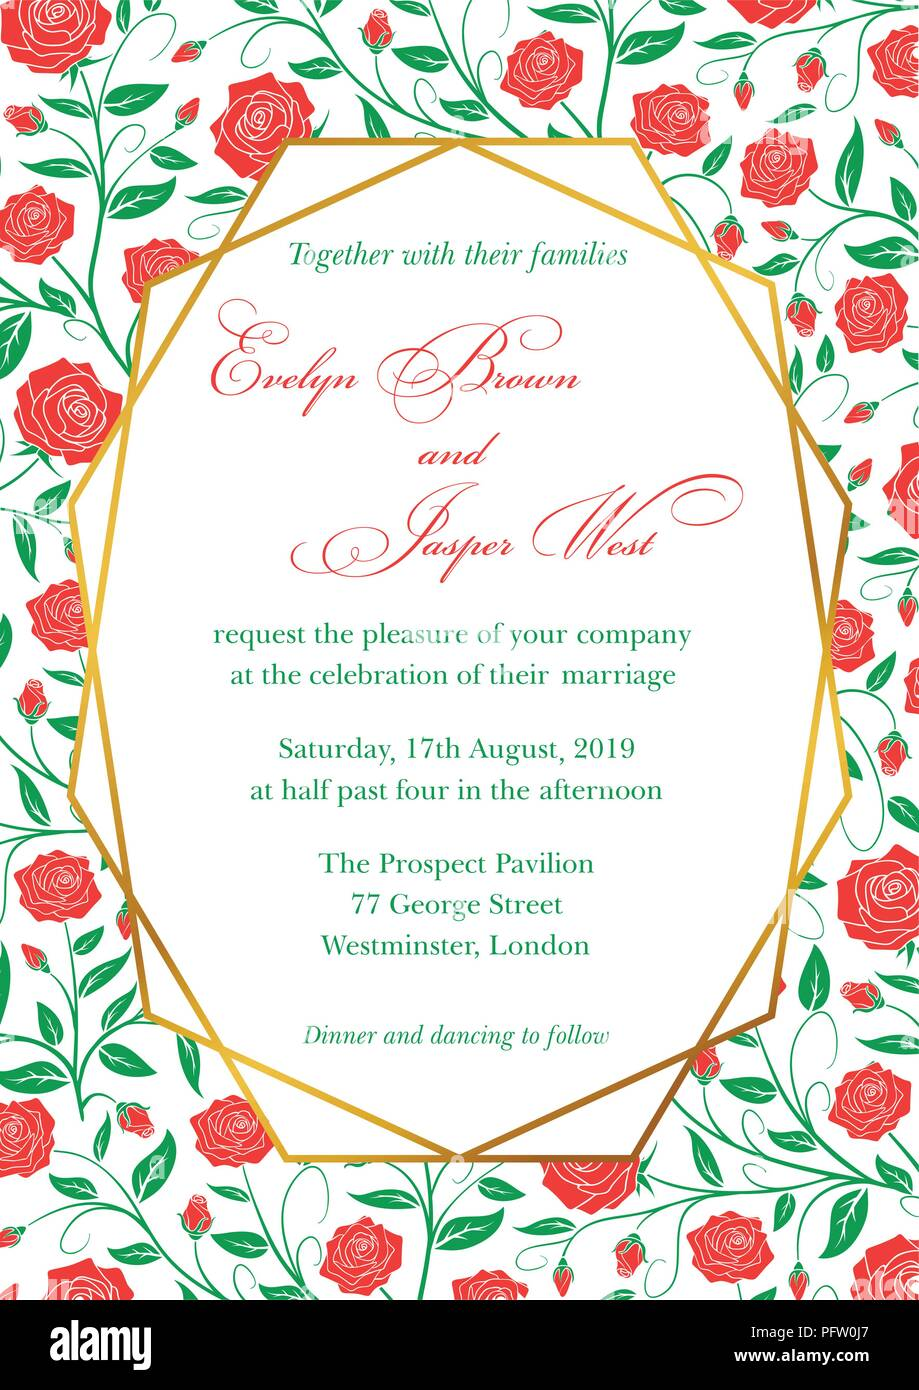 Wedding Invitation Red Roses Floral Invite Card Design With